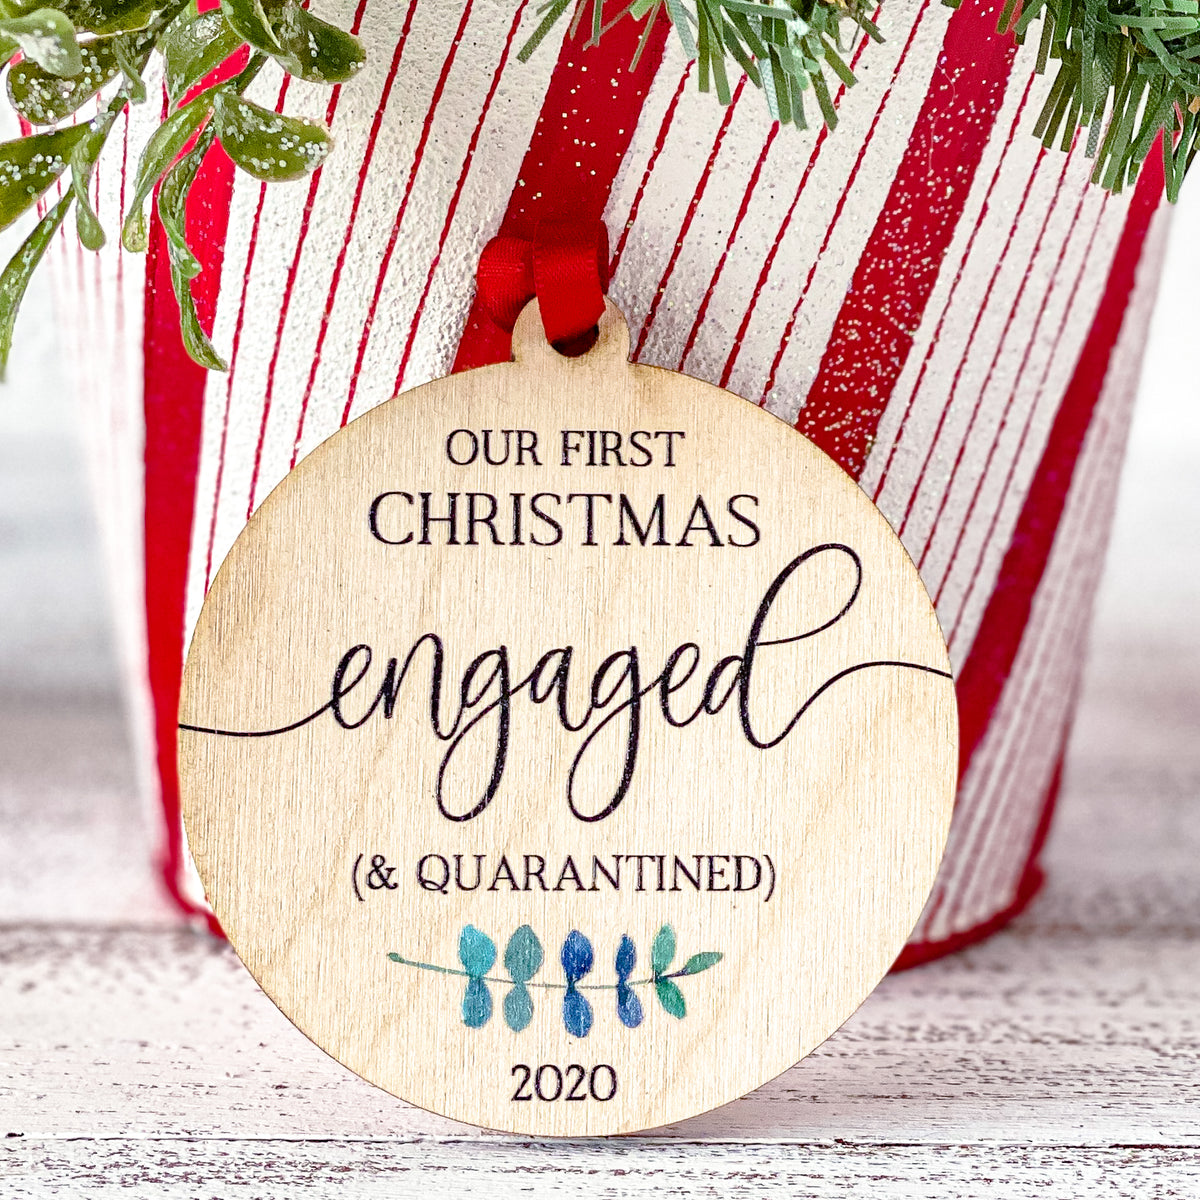 Our First Christmas Engaged & Quarantined Round Wooden Ornament